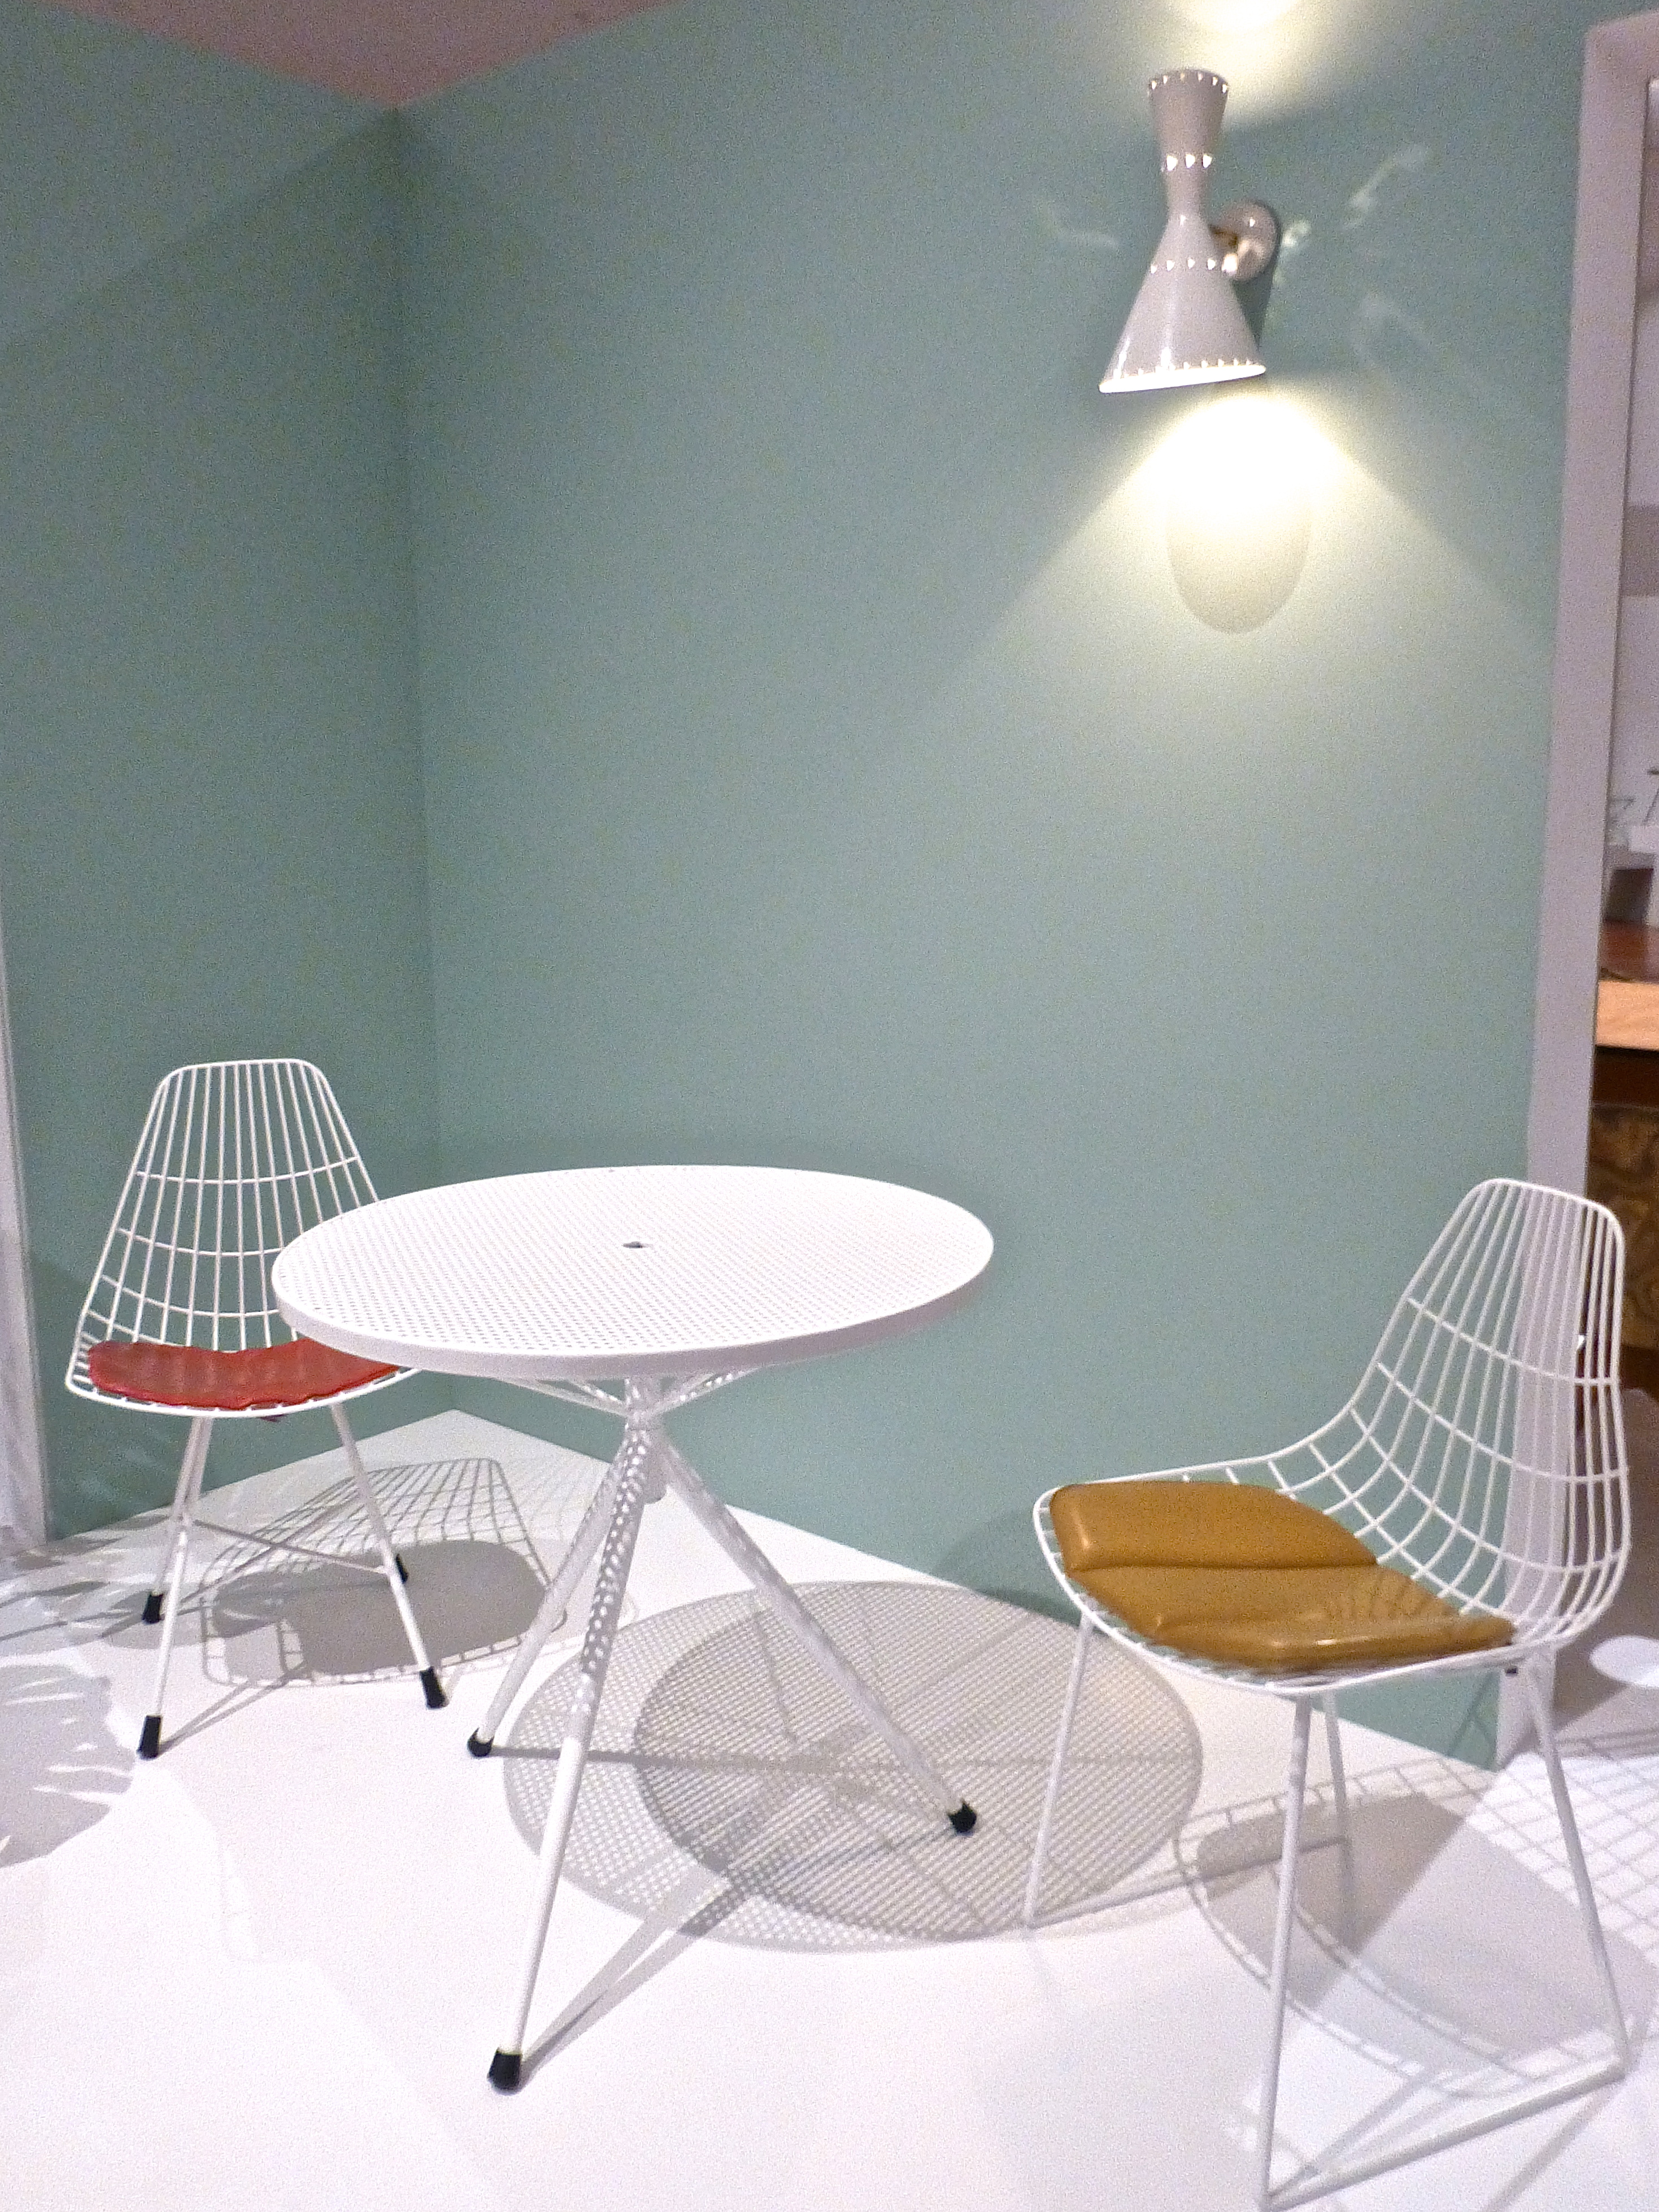 H-Flex Chair by Michael Hirst, 1960. Outdoor Table by Michael Hirst, 1958. Beco Lamp by Don Brown, mid 1950s.